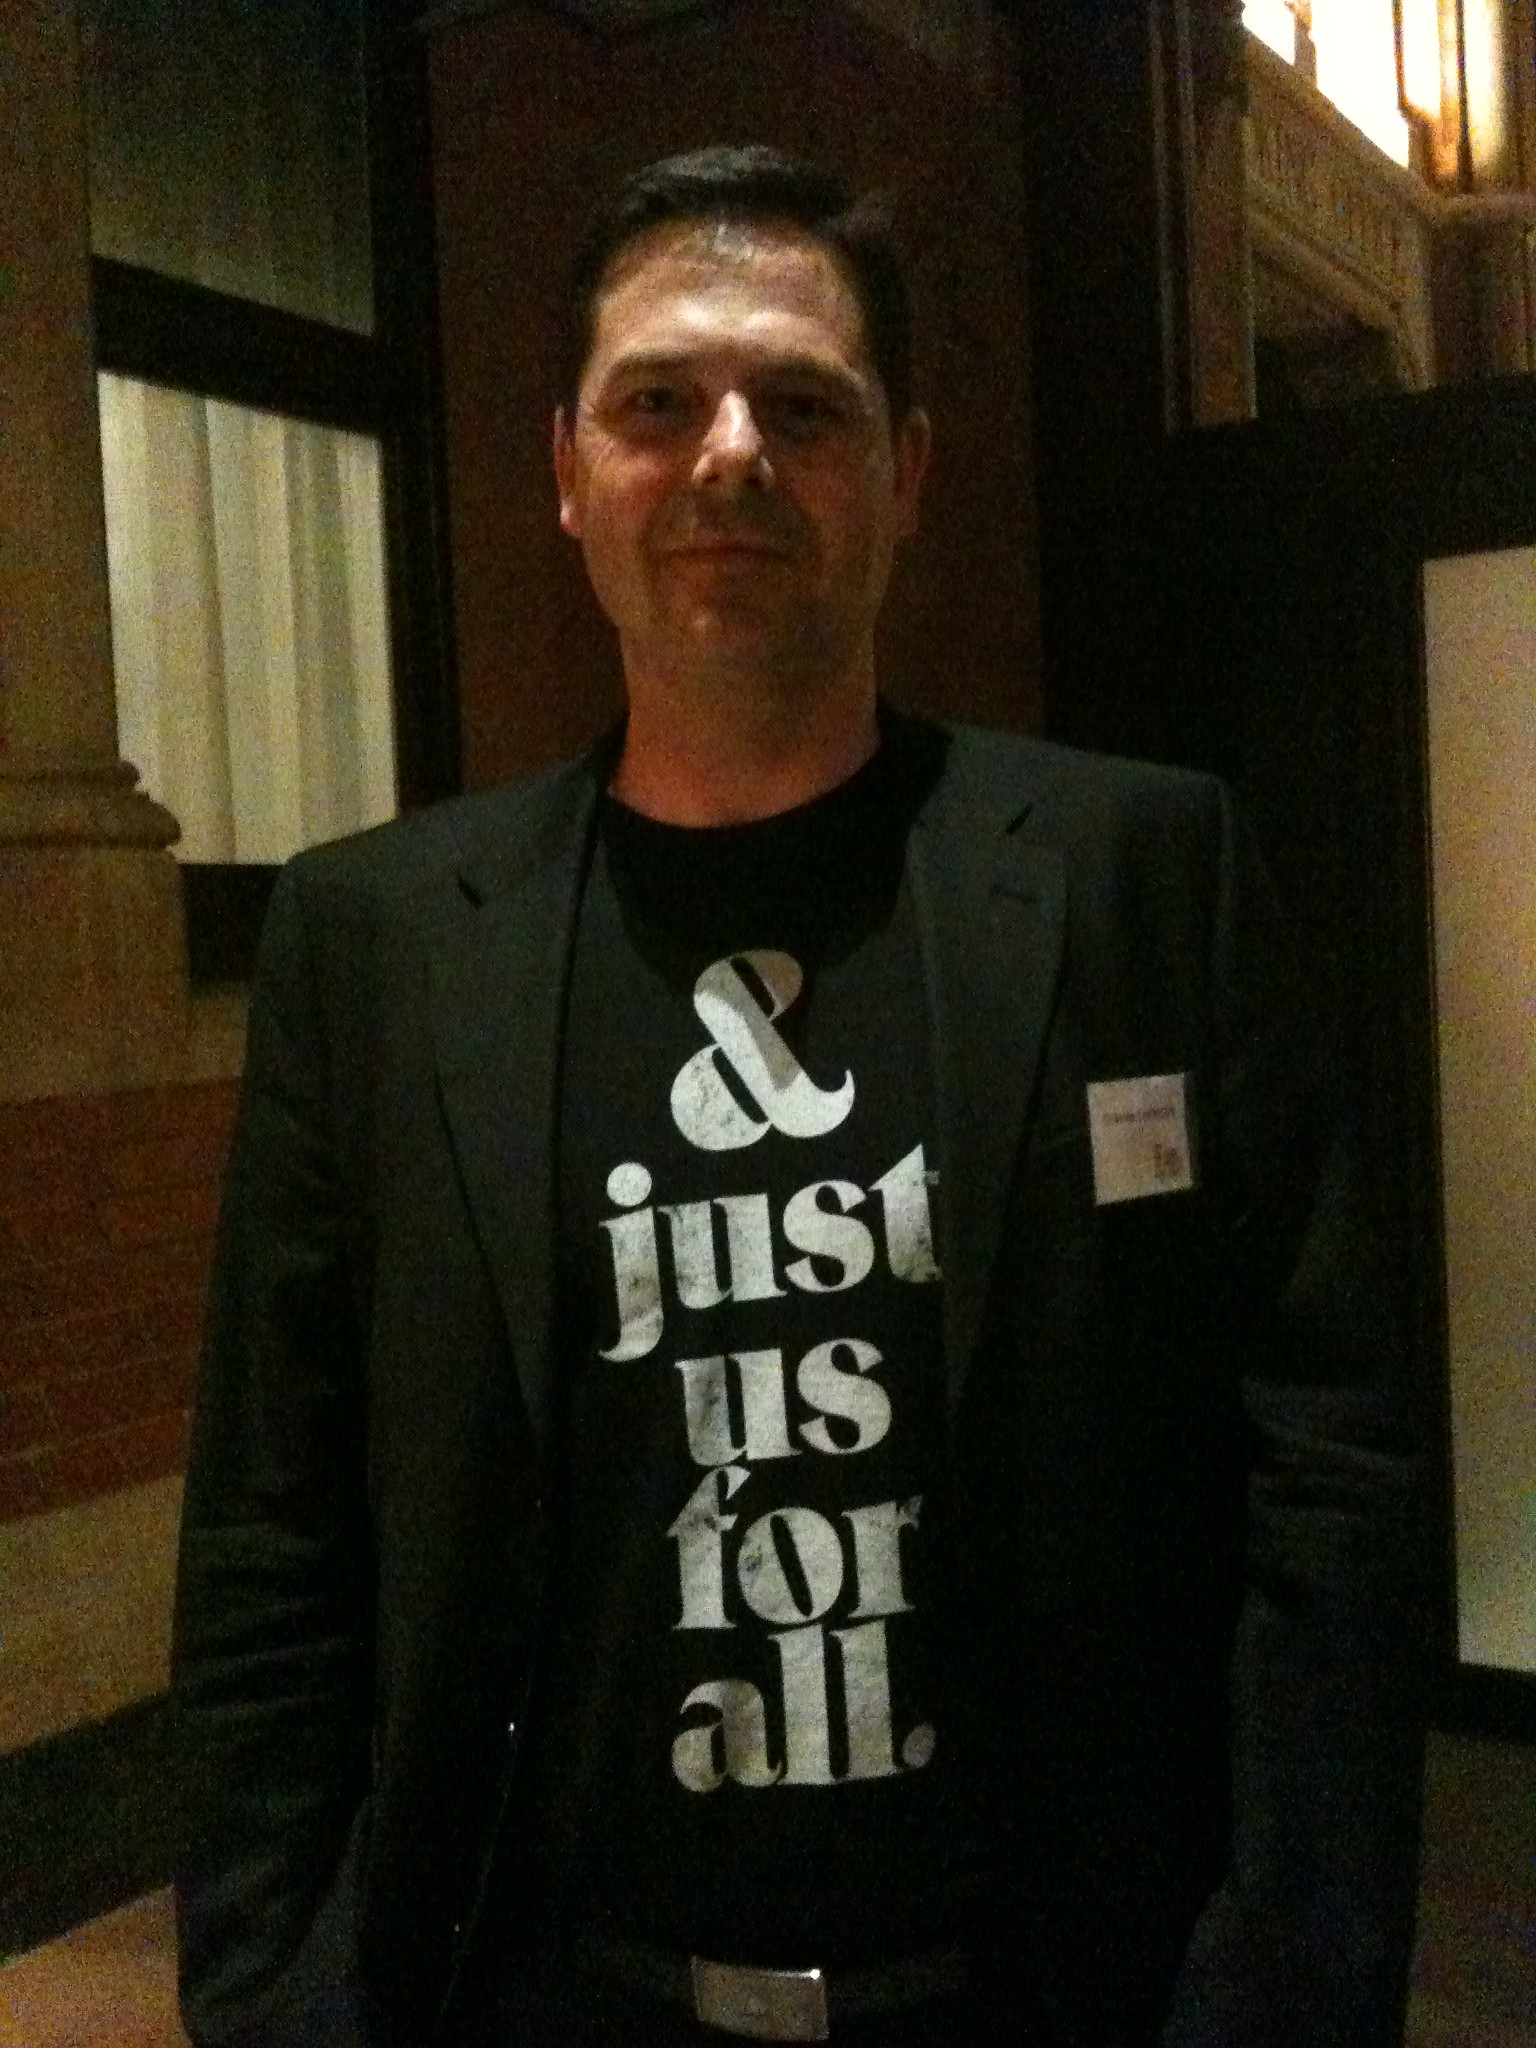 Graeme in And just us for all t-shirt